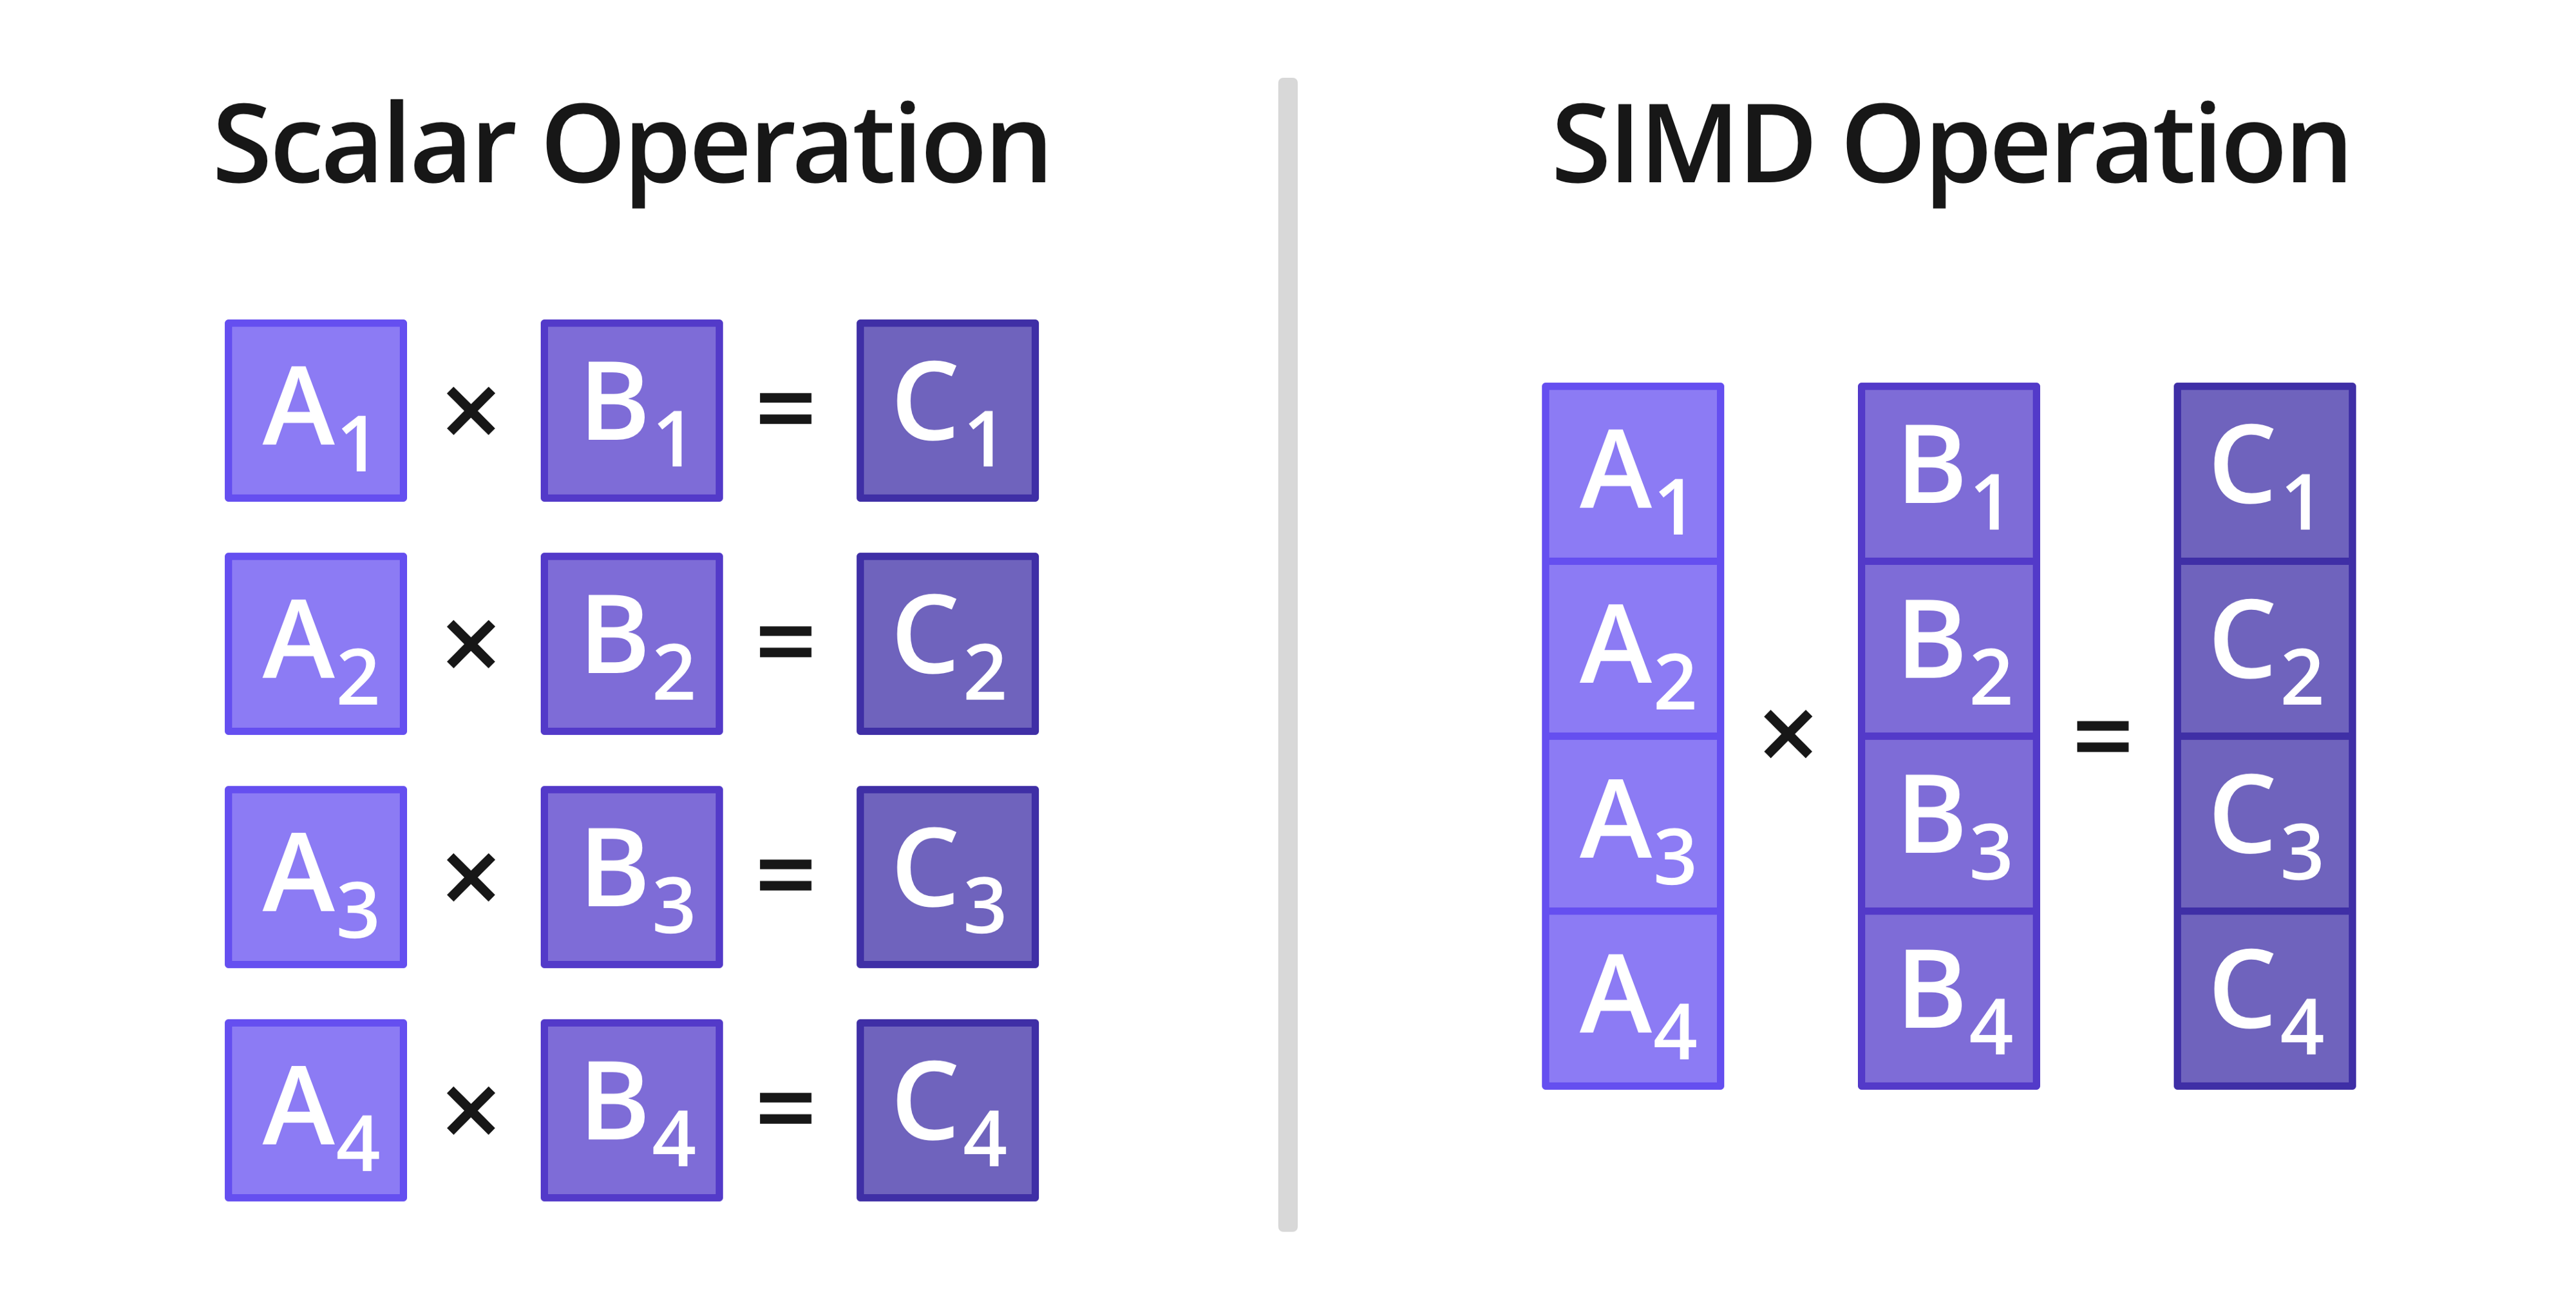 Scalar Operation vs SIMD vector operation